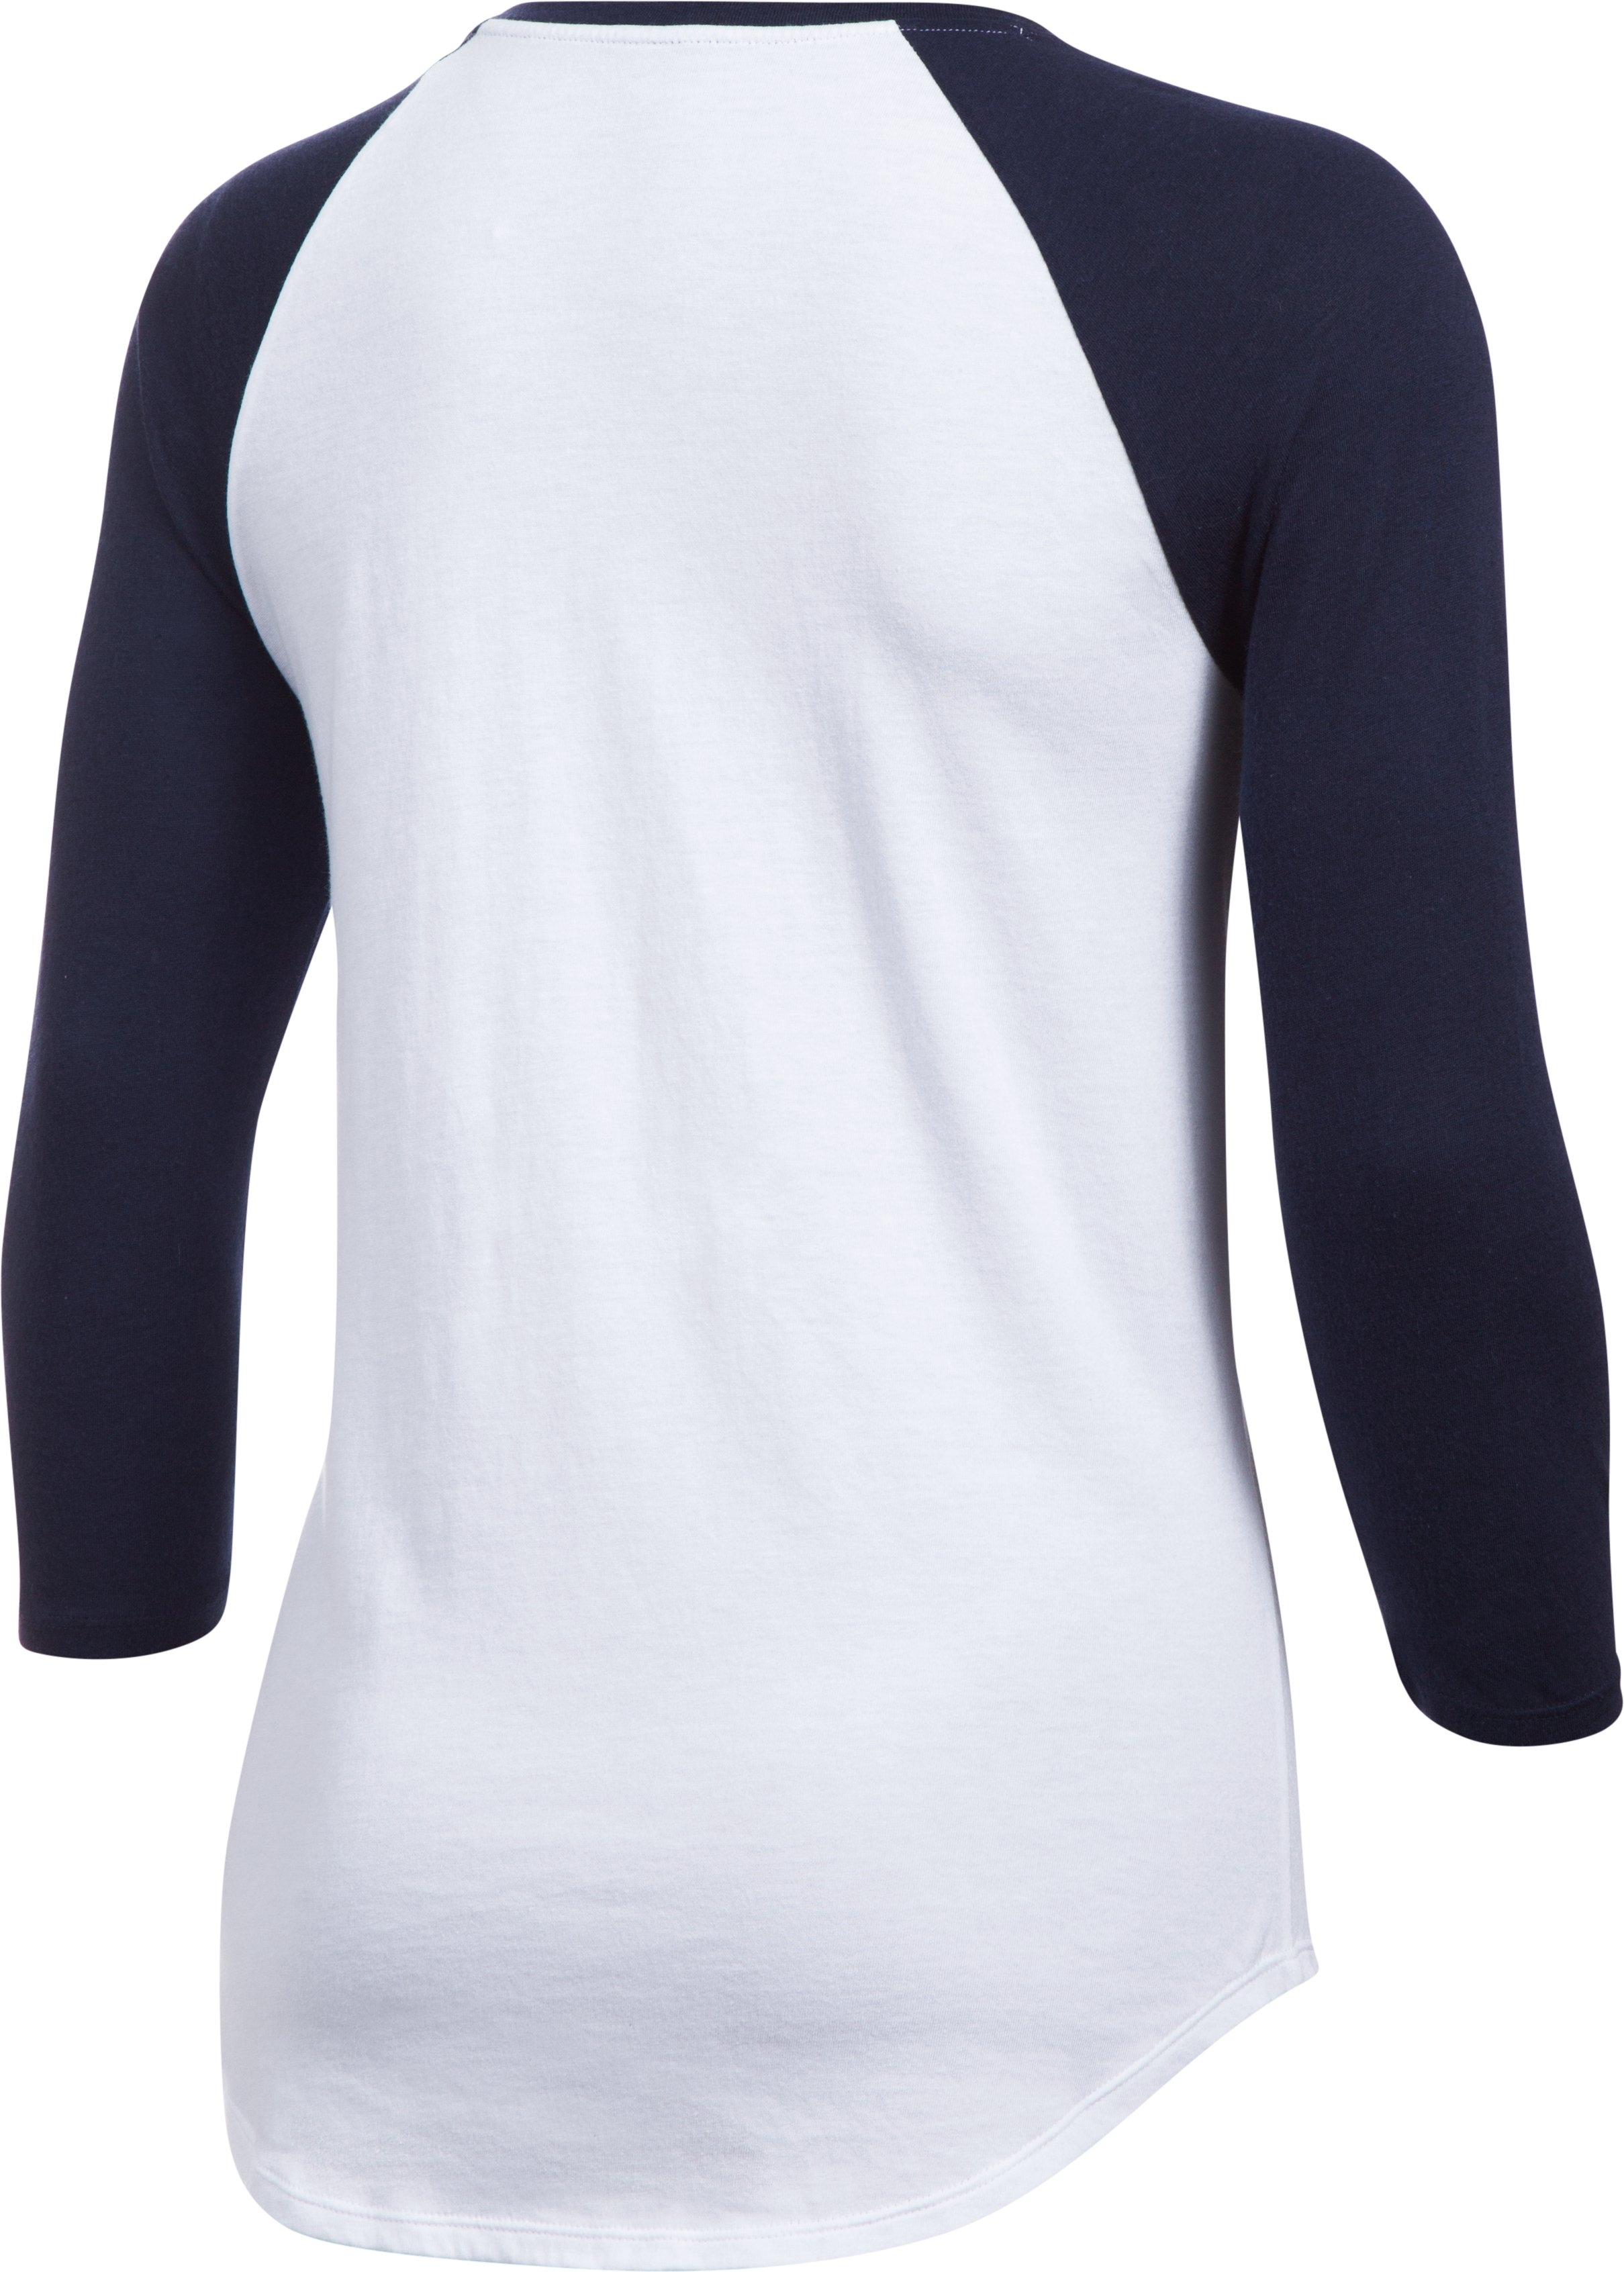 Women's Milwaukee Brewers ¾ Sleeve T-Shirt, Midnight Navy,